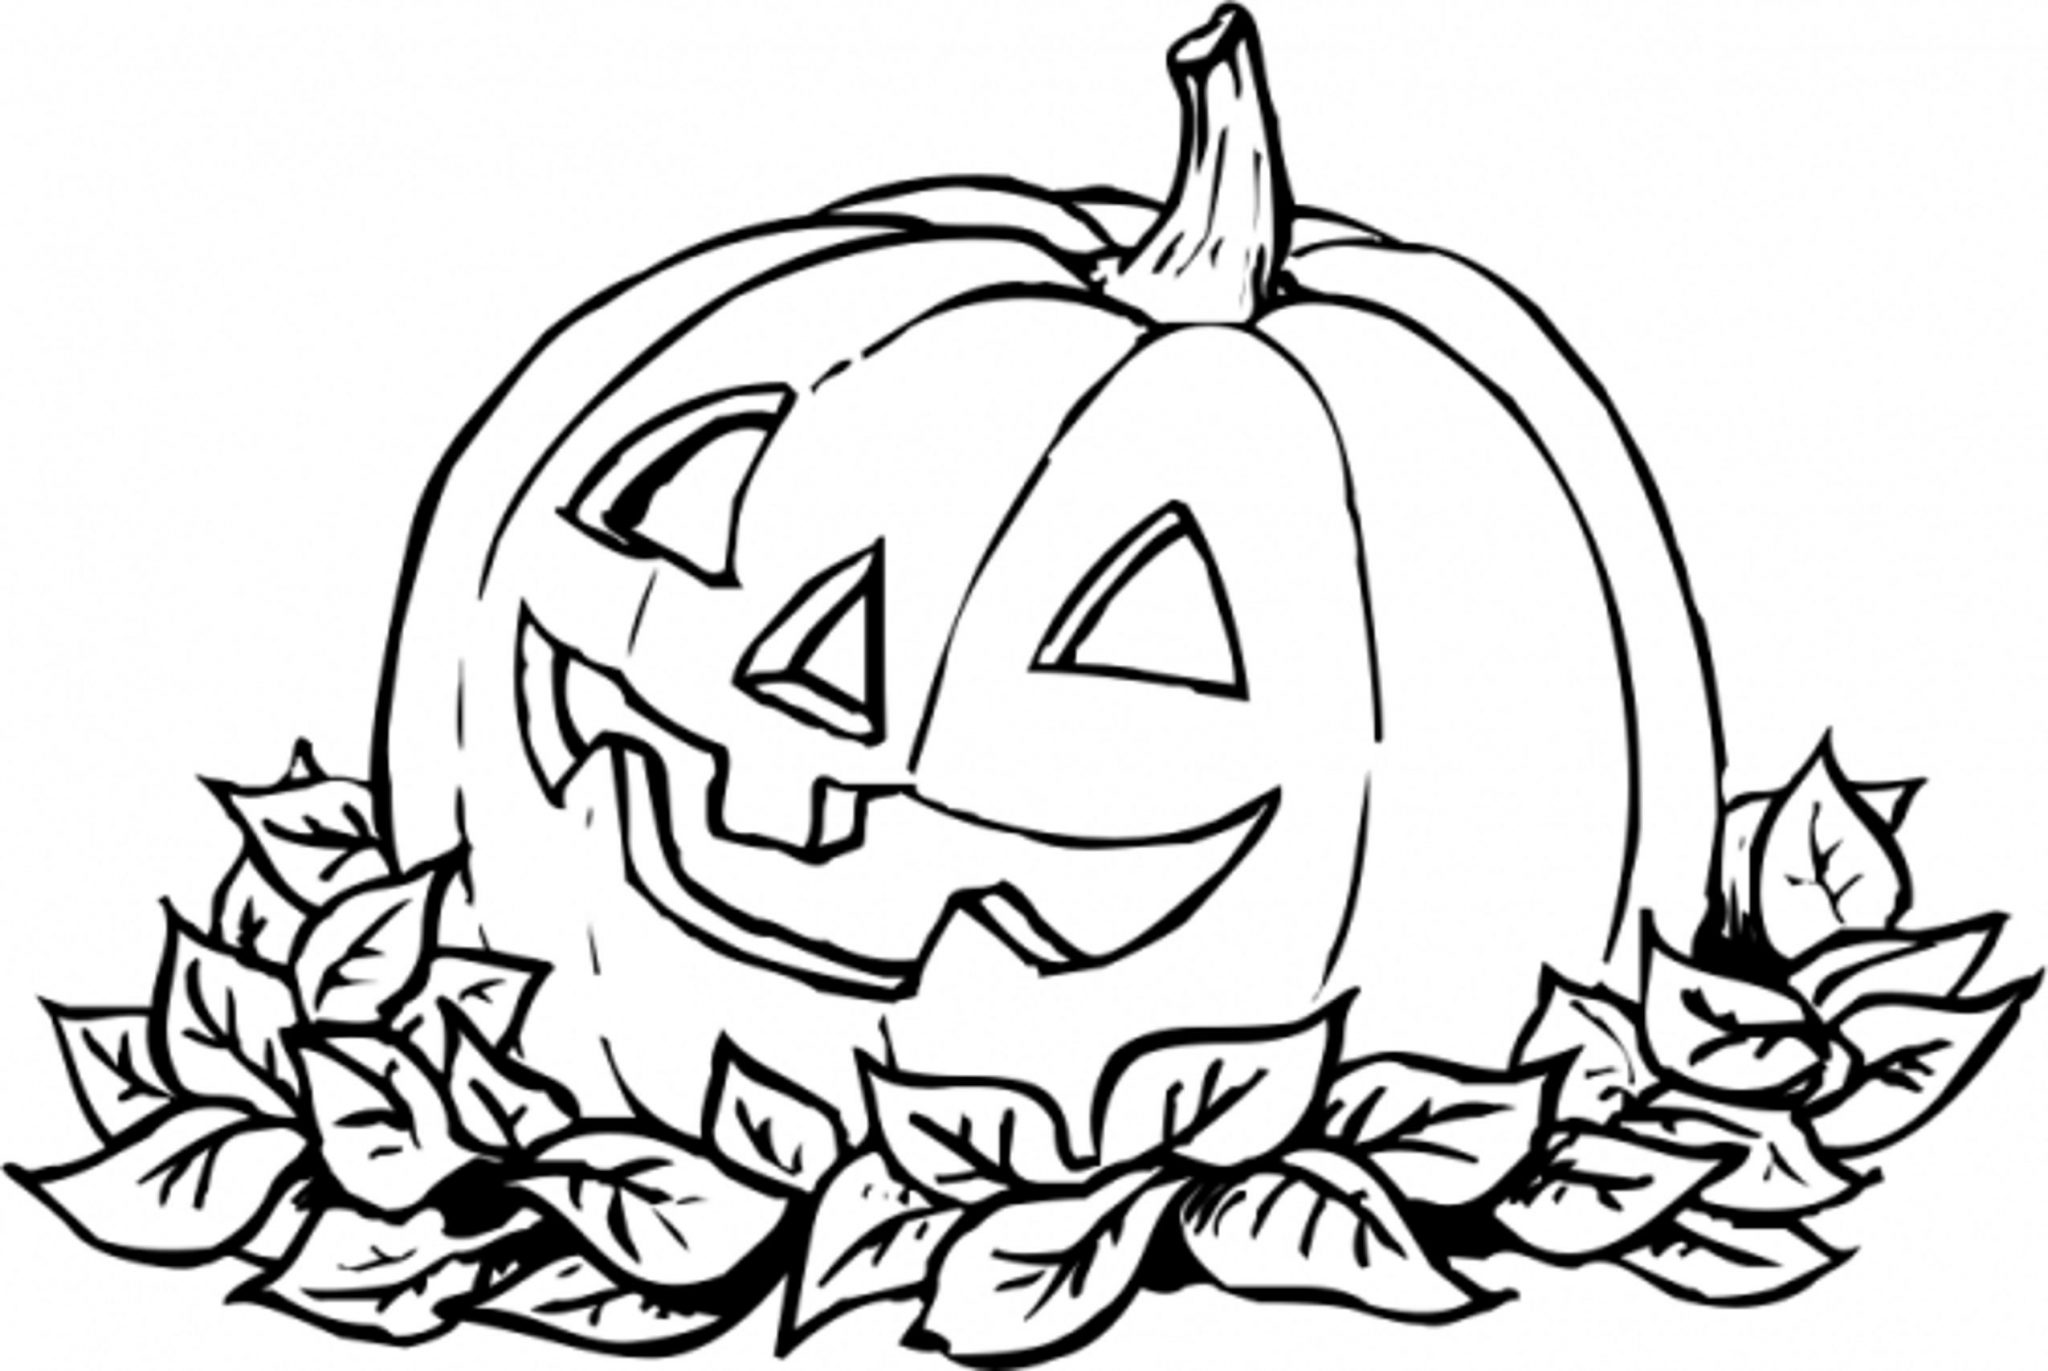 pumpkin coloring pages free happy halloween pumpkin coloring pages coloring pages free pumpkin pages coloring